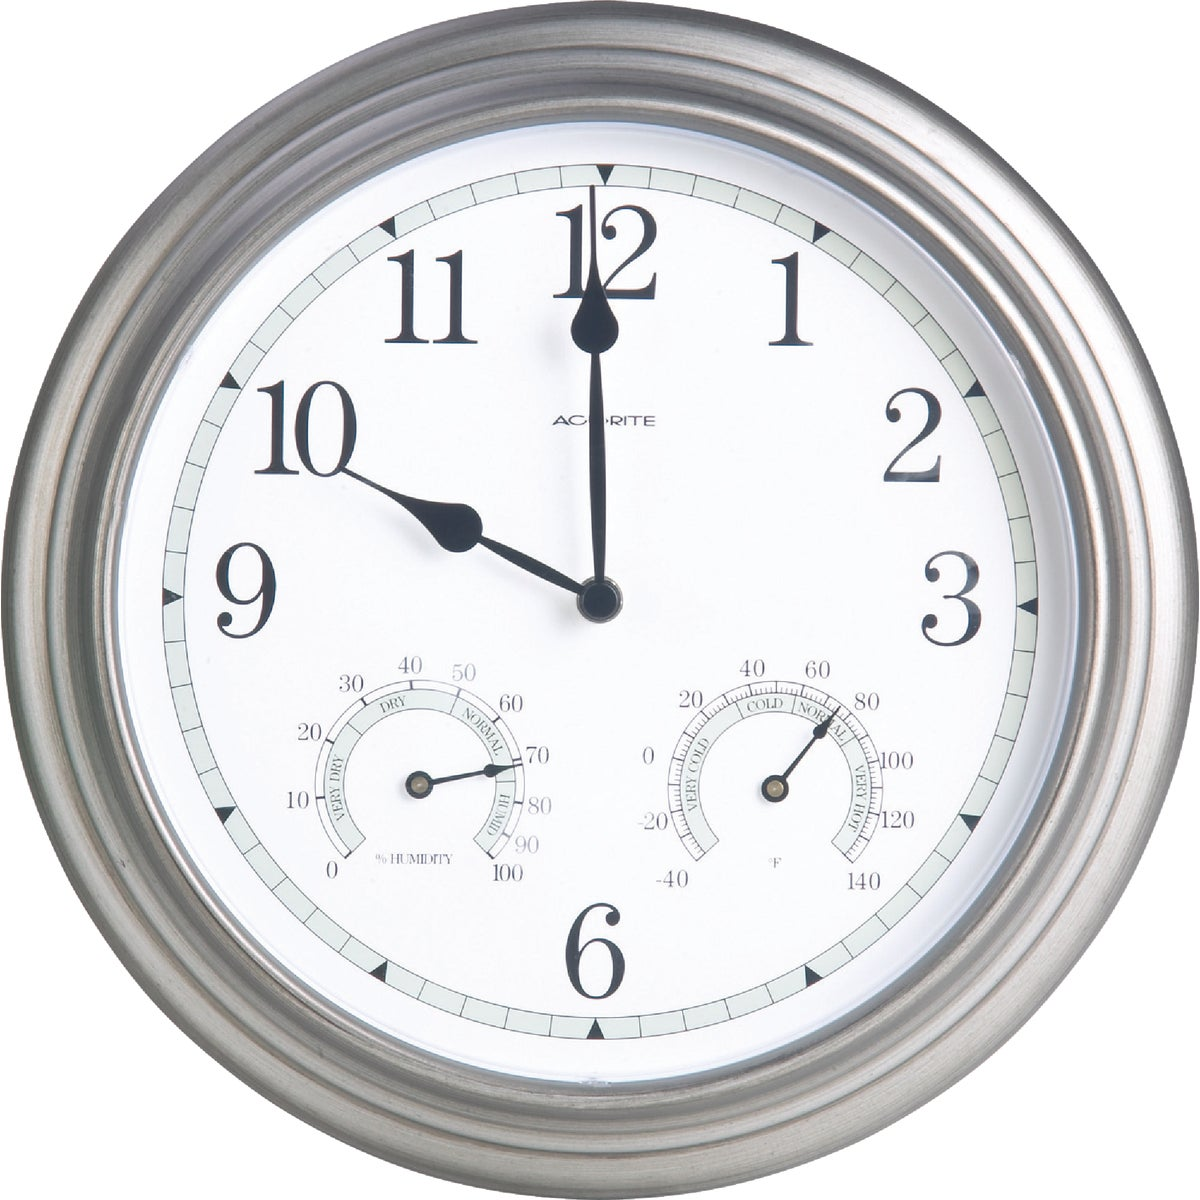 PEWTER THERM/CLOCK - 00920A2 by Chaney Instrument Co